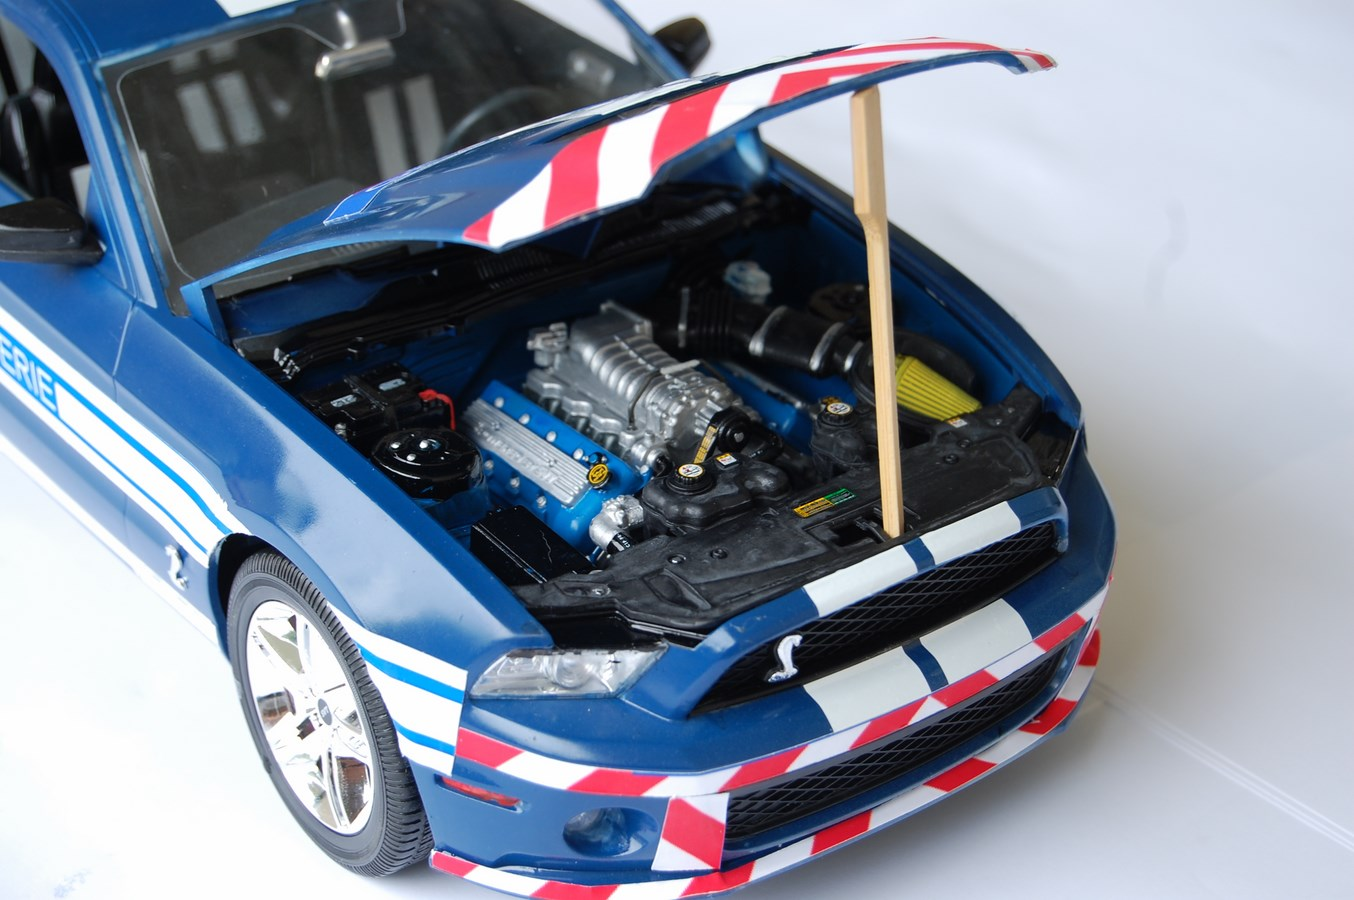 Shelby GT 500 version imaginaire Gendarmerie - Page 2 203030Mustang46Copier